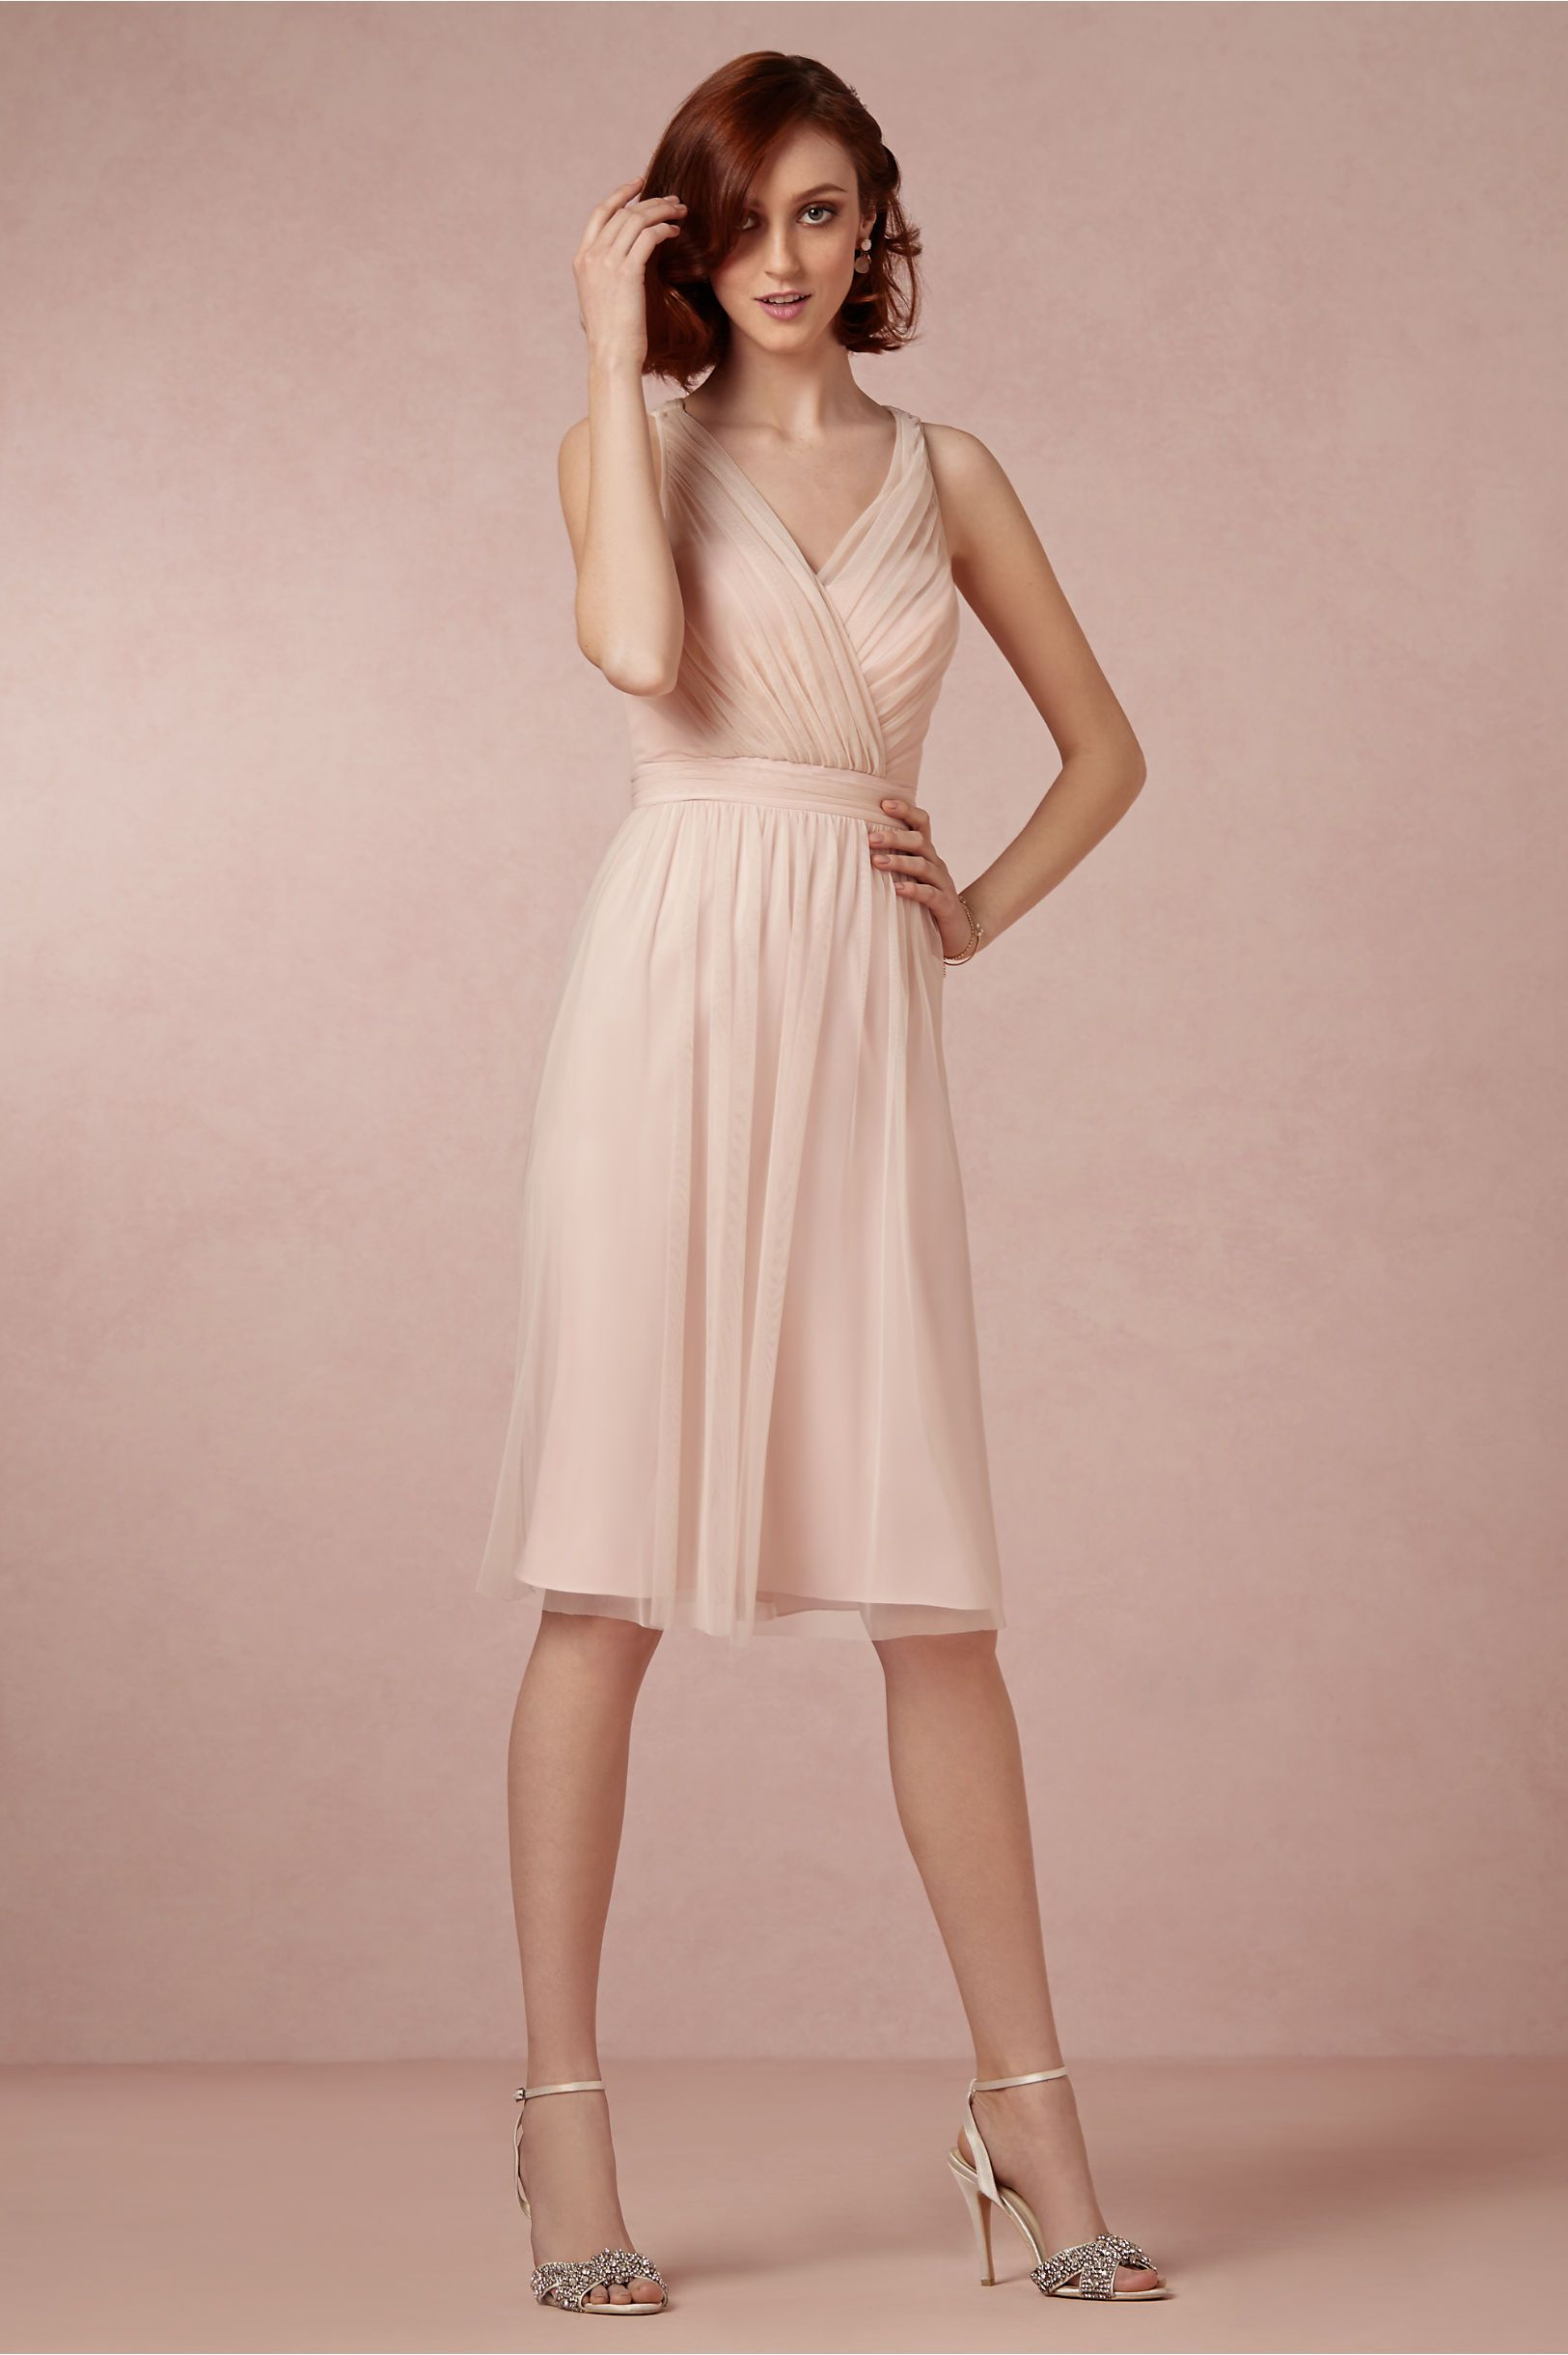 Tansy Dress from BHLDN | Wedding courting /Sequito | Pinterest ...